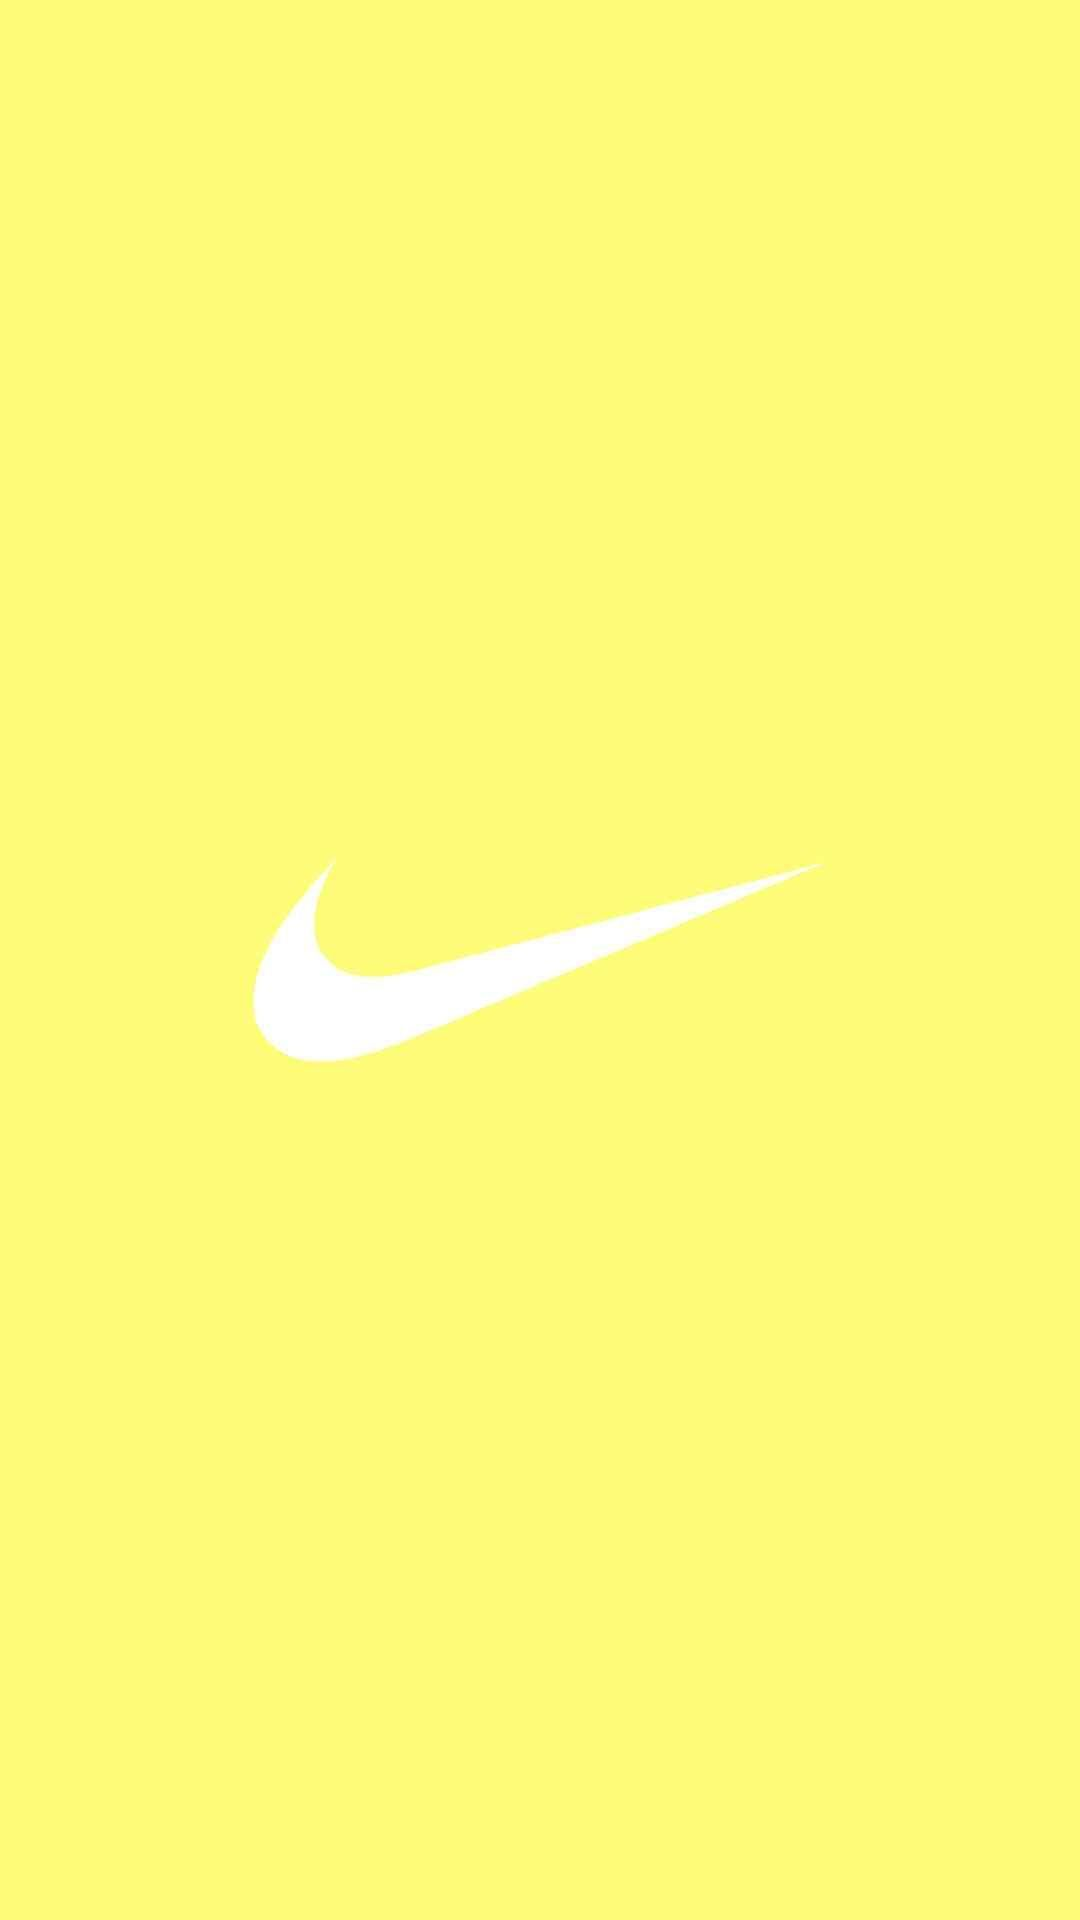 Nike Yellow Wallpapers - Wallpaper Cave